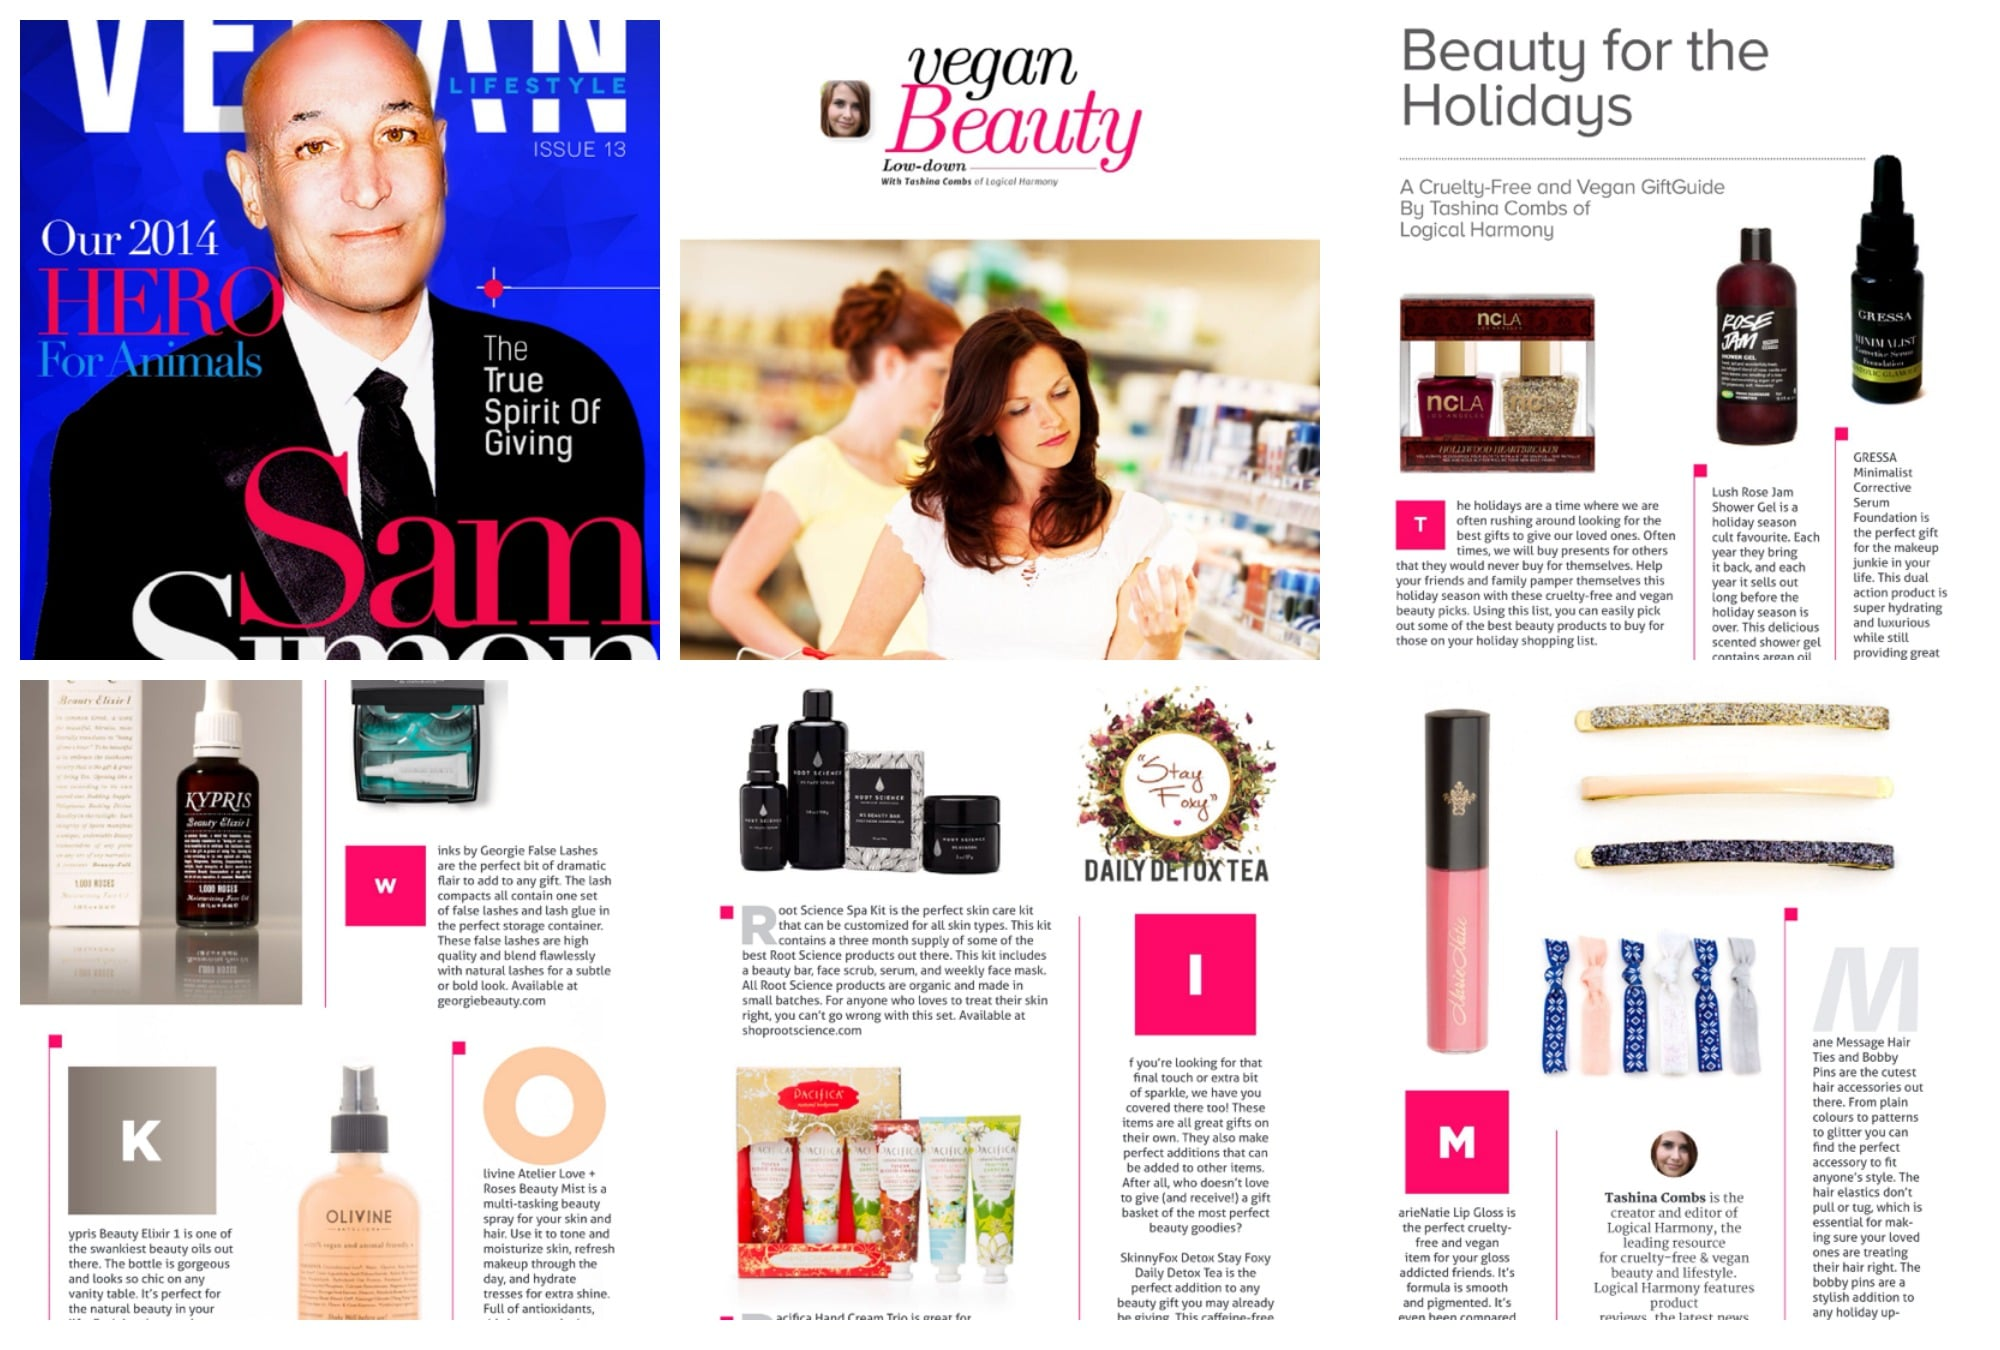 Beauty for the Holidays - A Cruelty Free & Vegan Gift Guide in Vegan Lifestyle Magazine